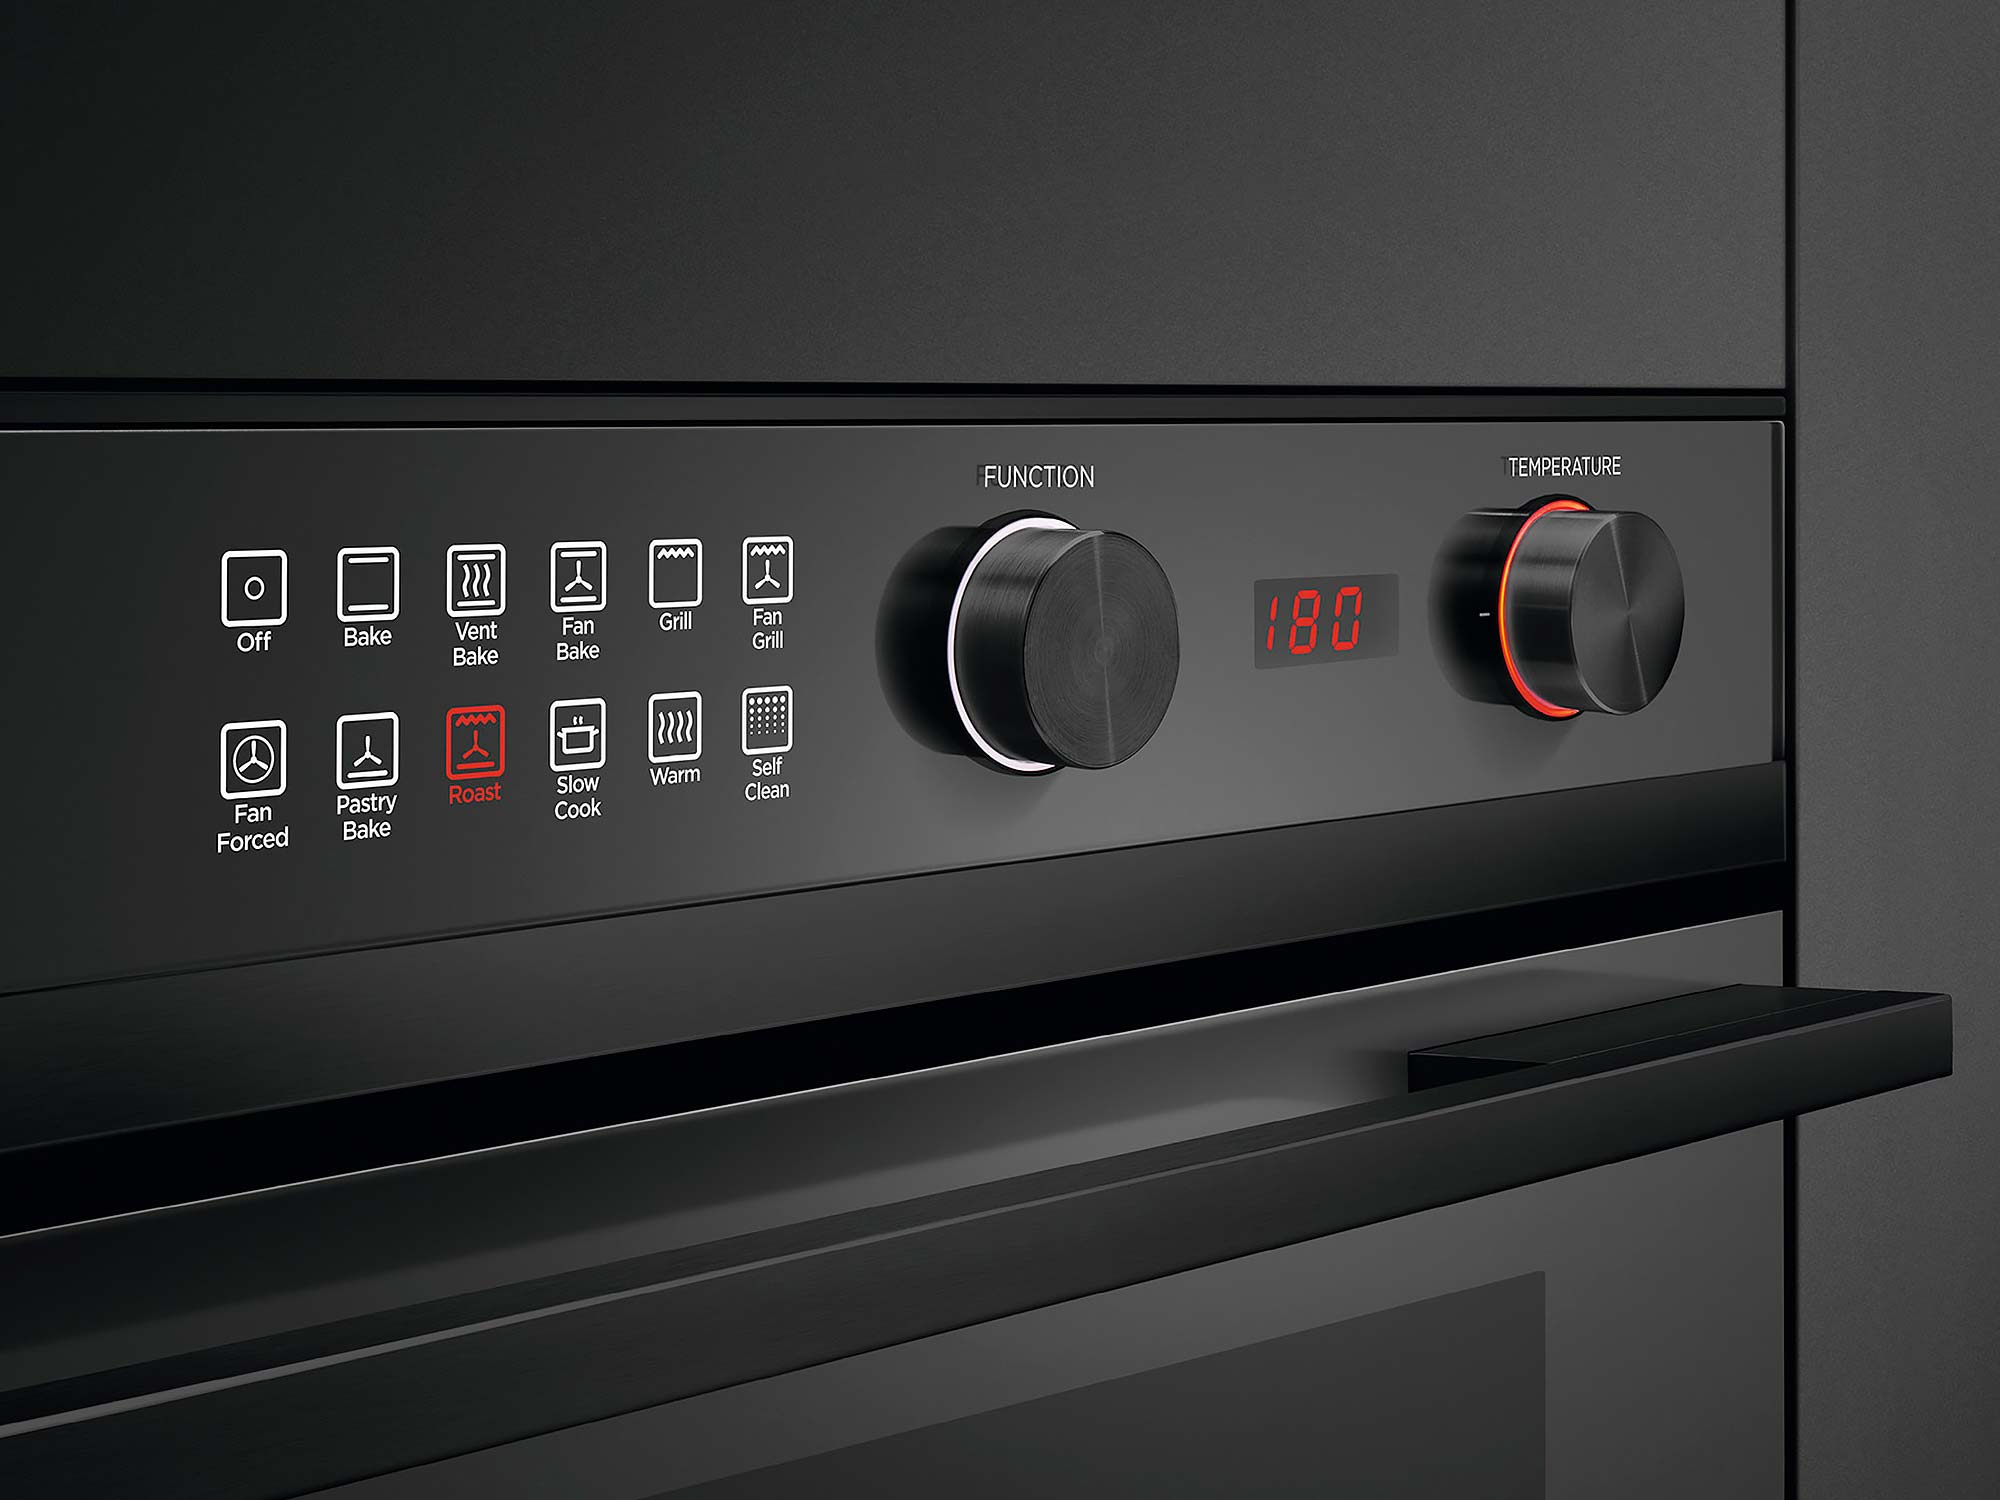 Fisher Paykel pyrolytic wall oven multi-function control panel black